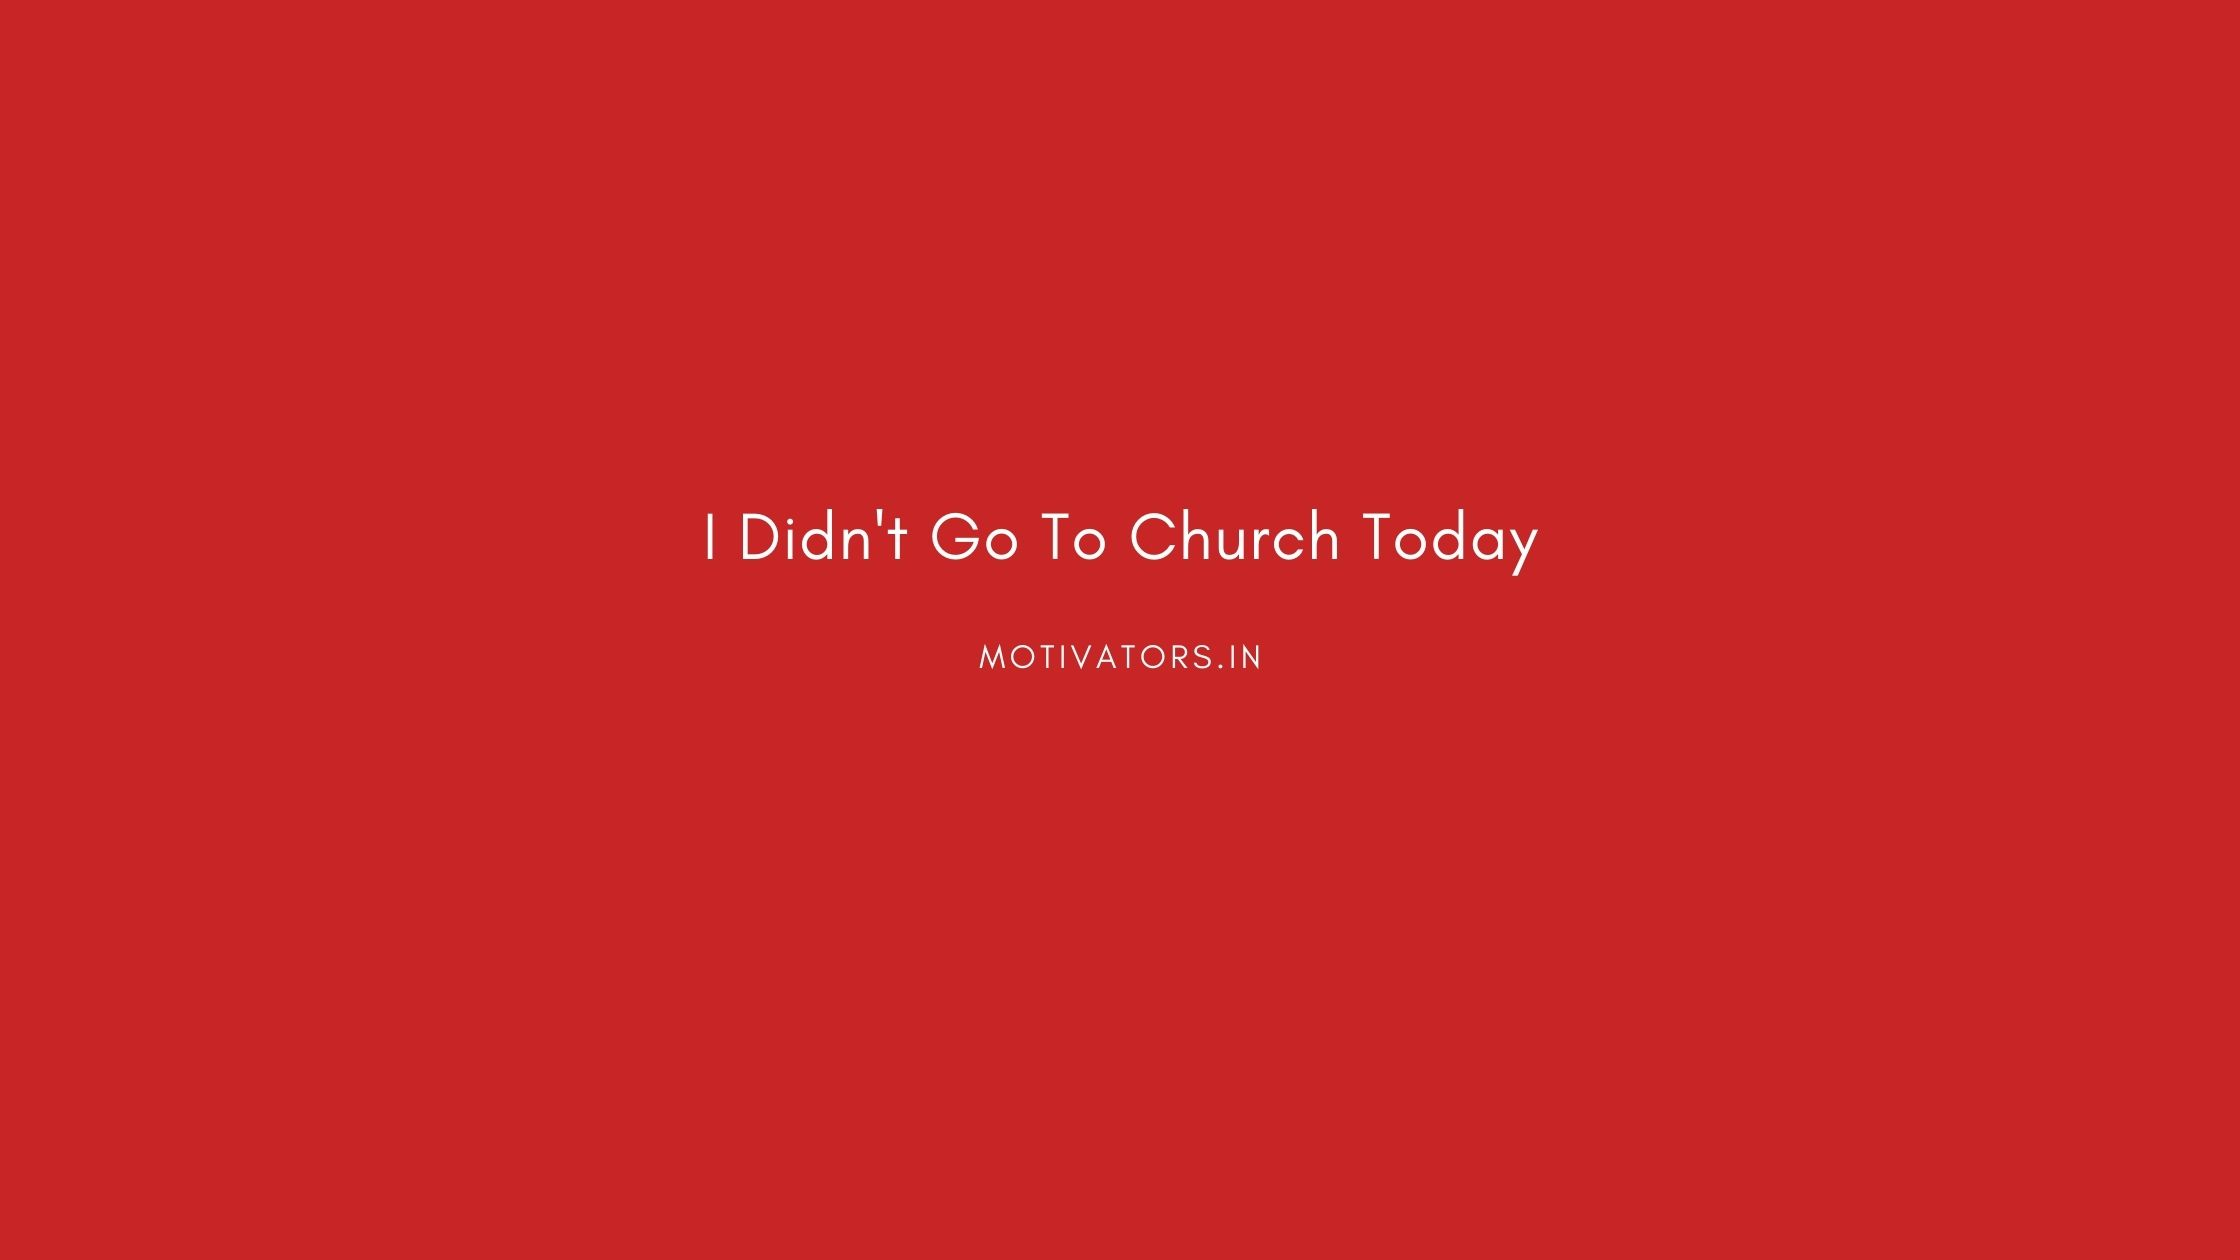 I Didn't Go To Church Today